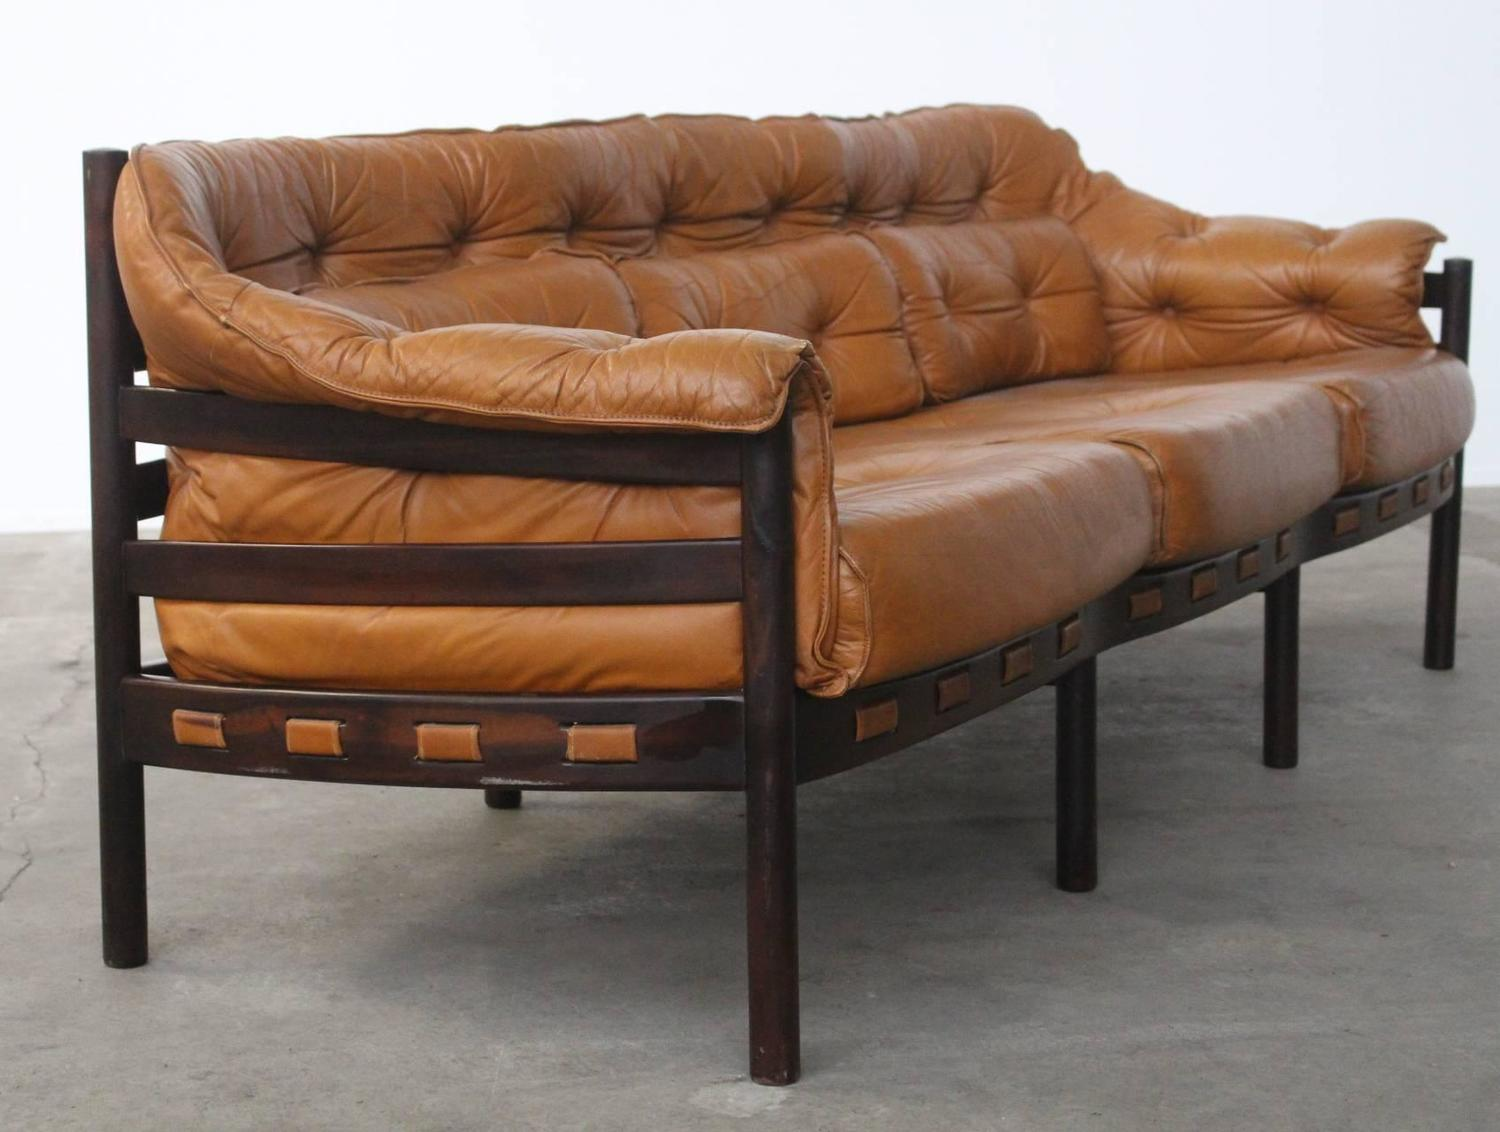 camel tufted sofa chaise victorian set philippines leather colored three seat arne norell